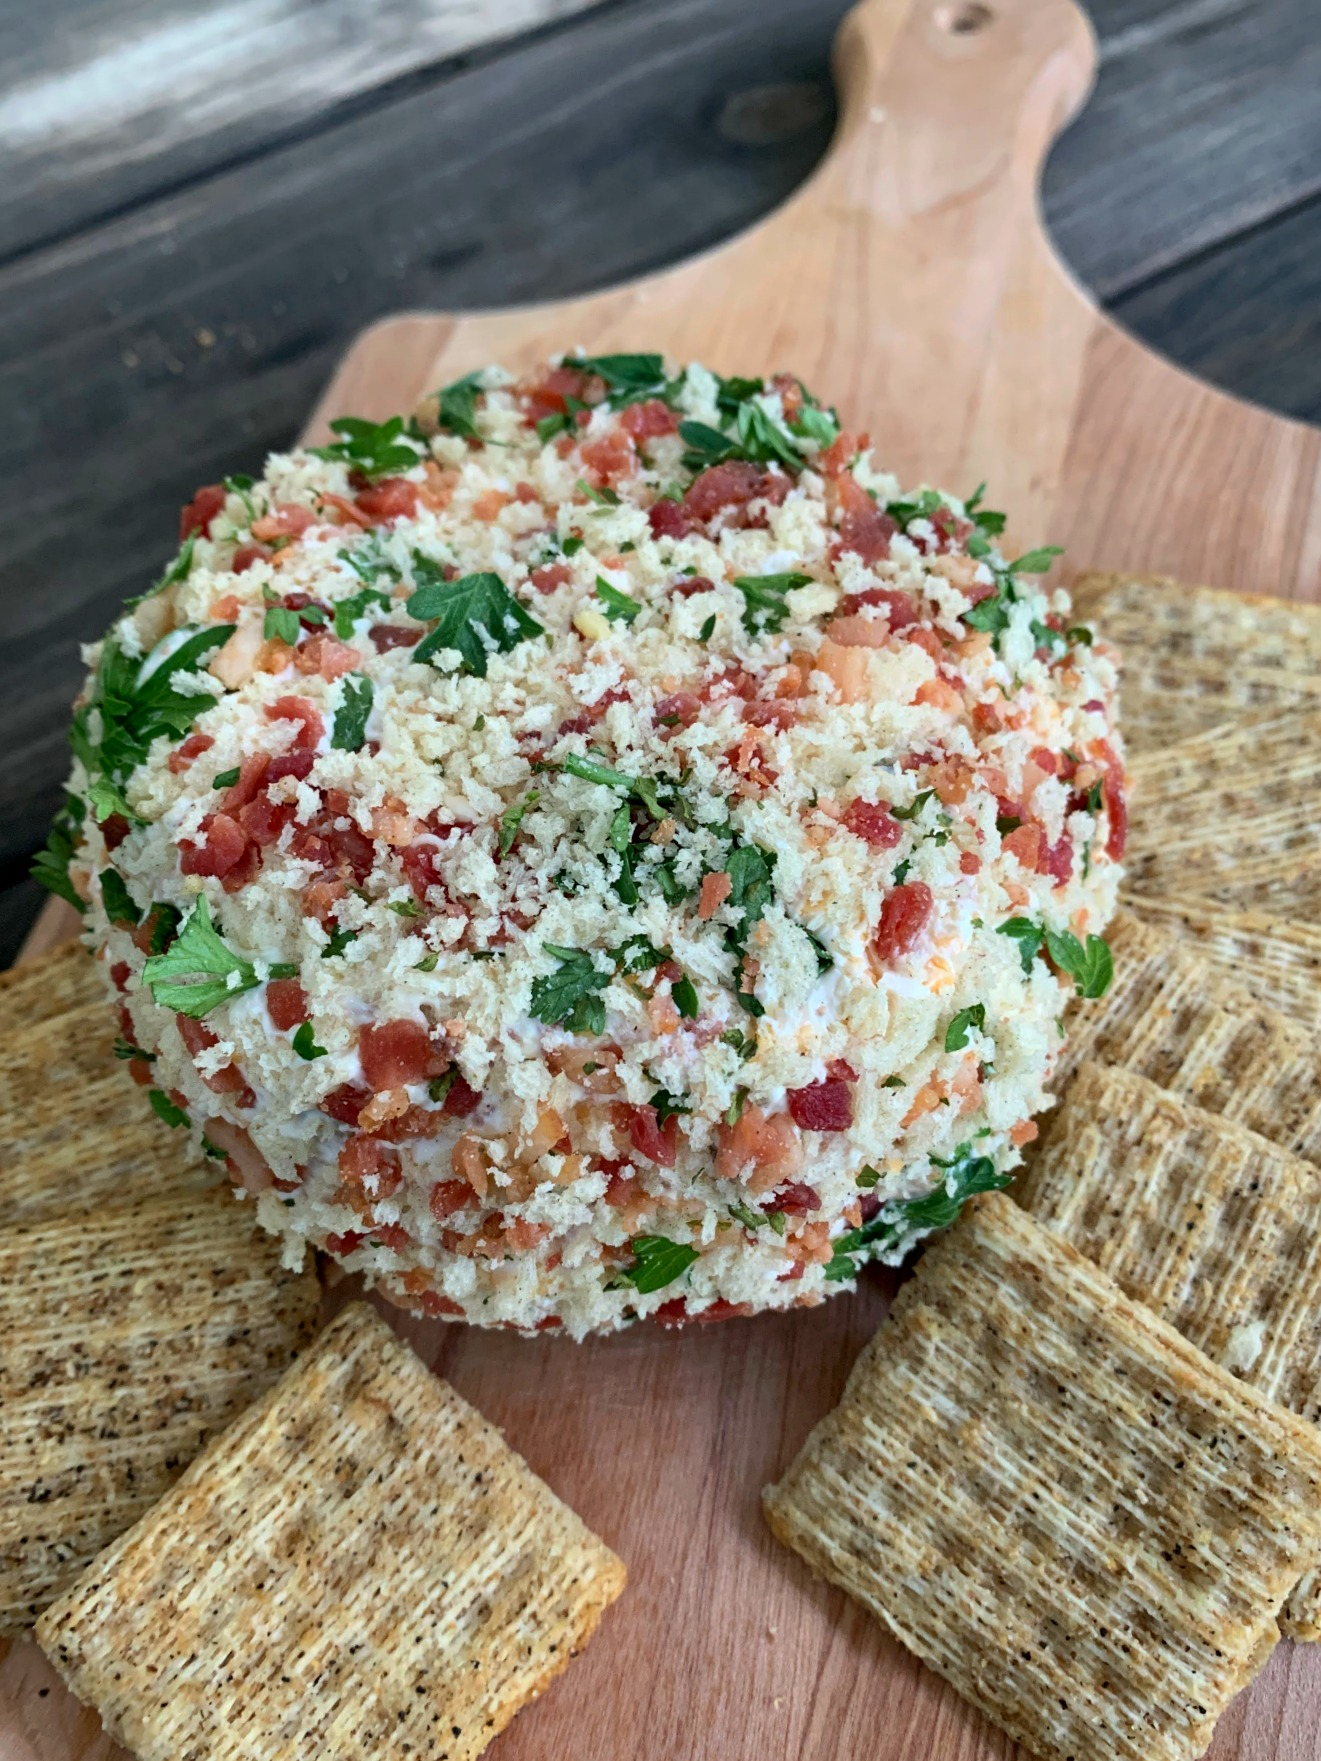 jalapeno cheese ball on a wooden cutting board with crackers around it